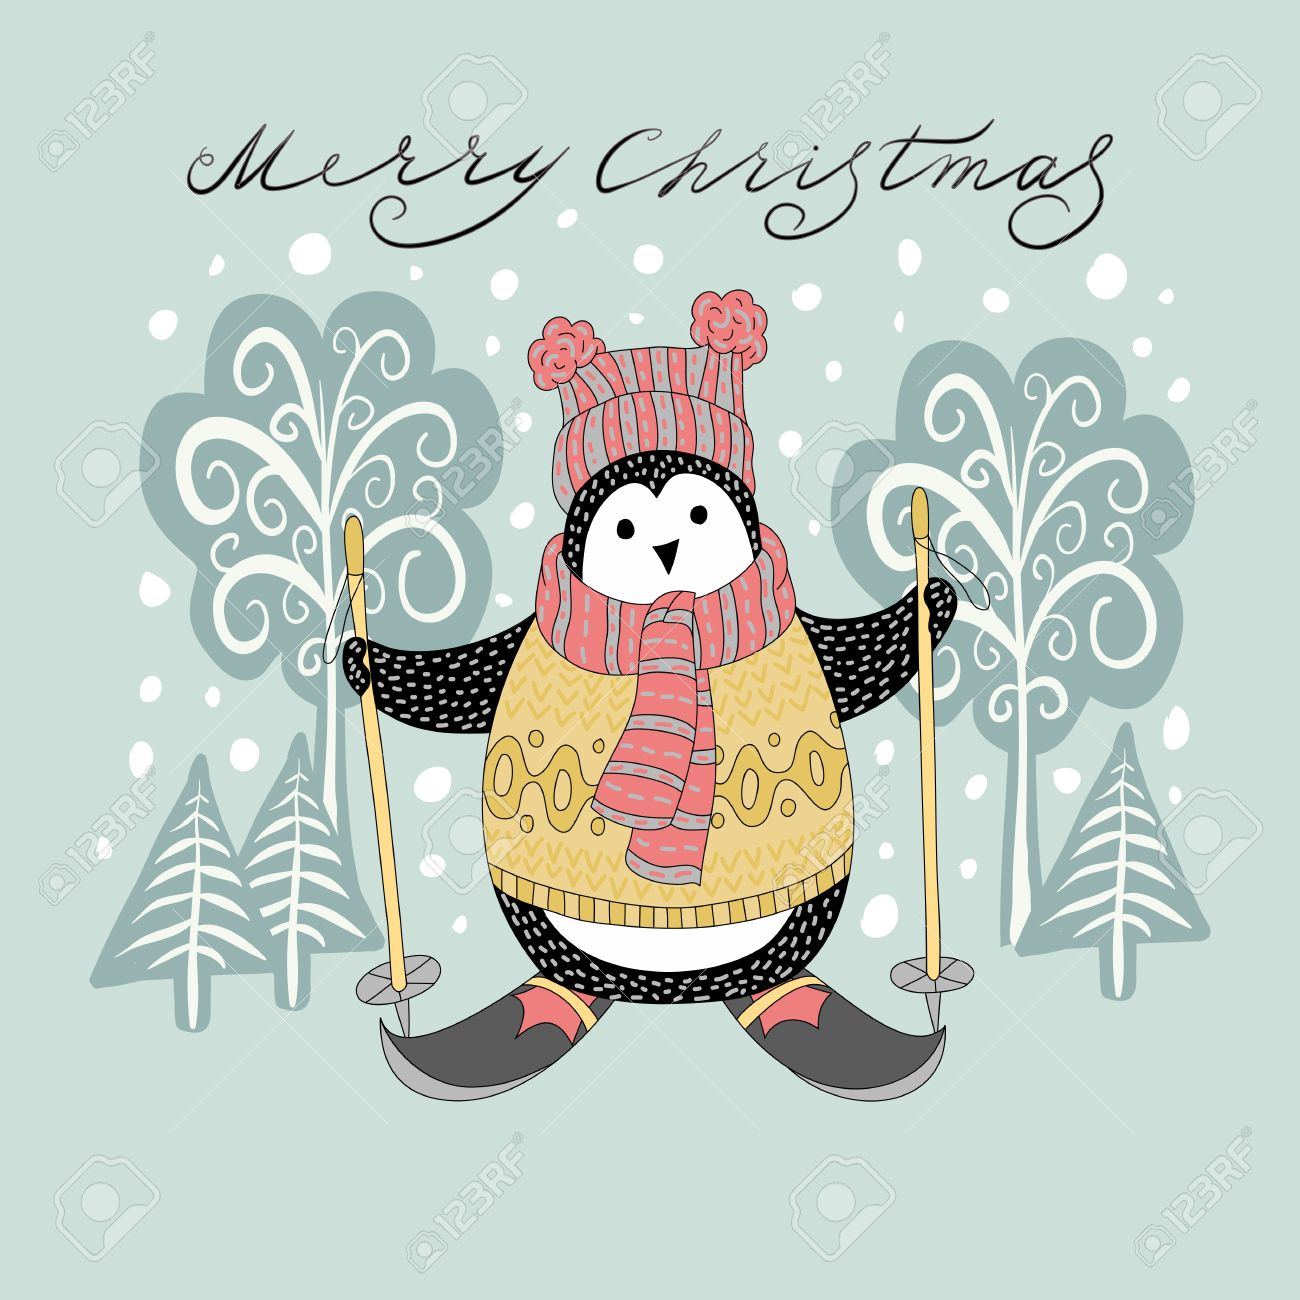 Cute Hand Drawn Penguins By Ski Merry Christmas Greetings Royalty